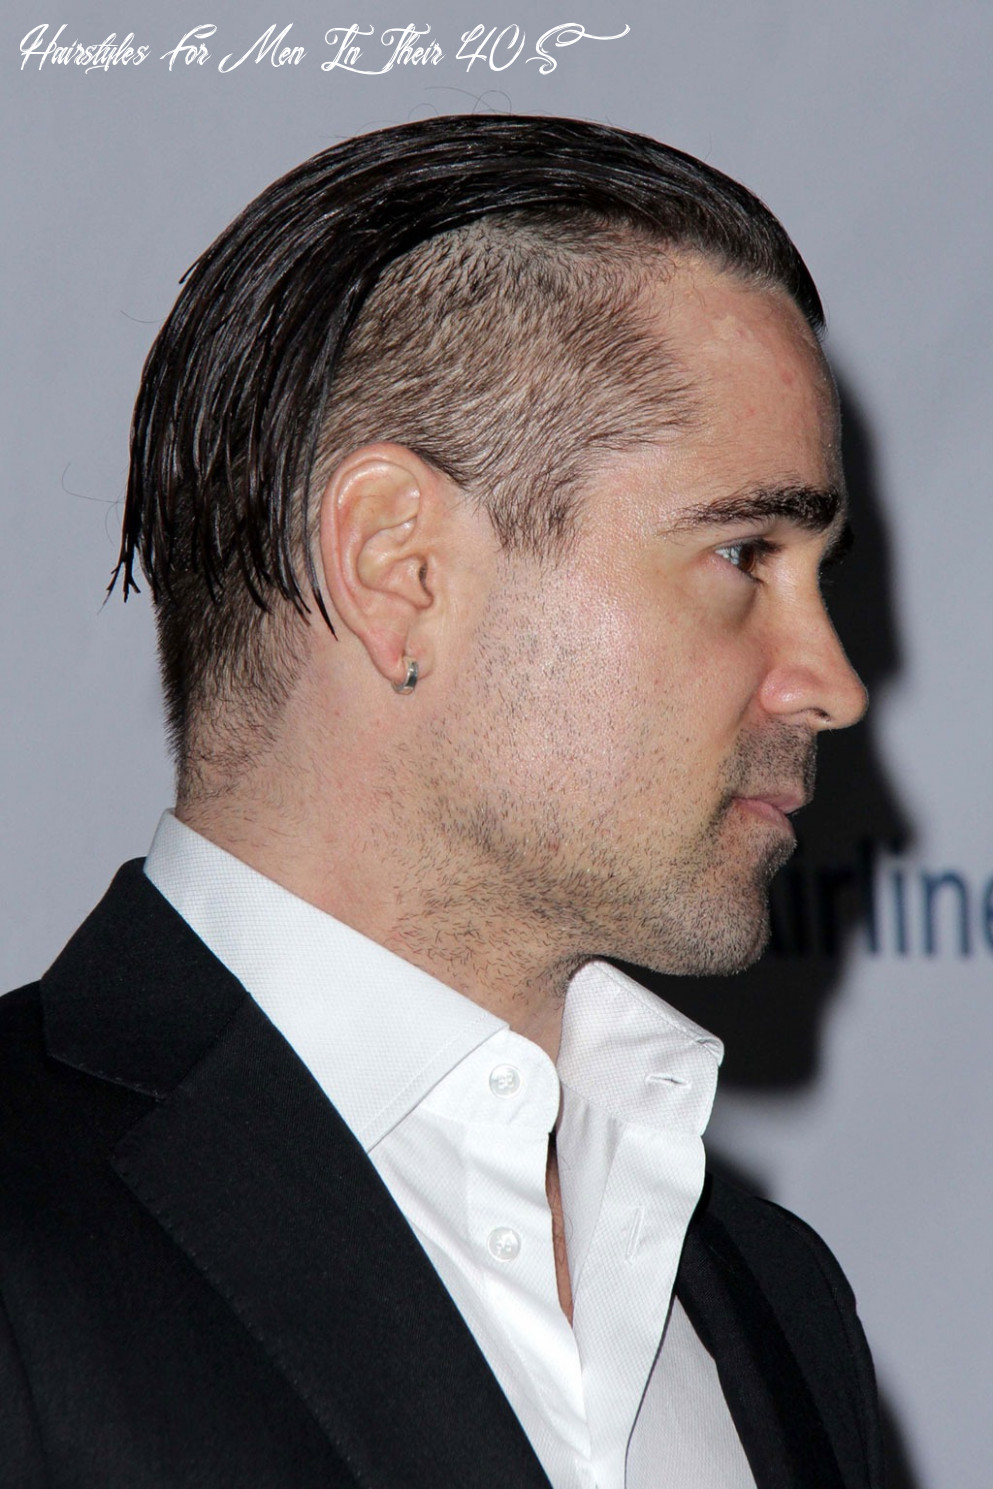 The best and worst hairstyles for men in their 10s | best life hairstyles for men in their 40s